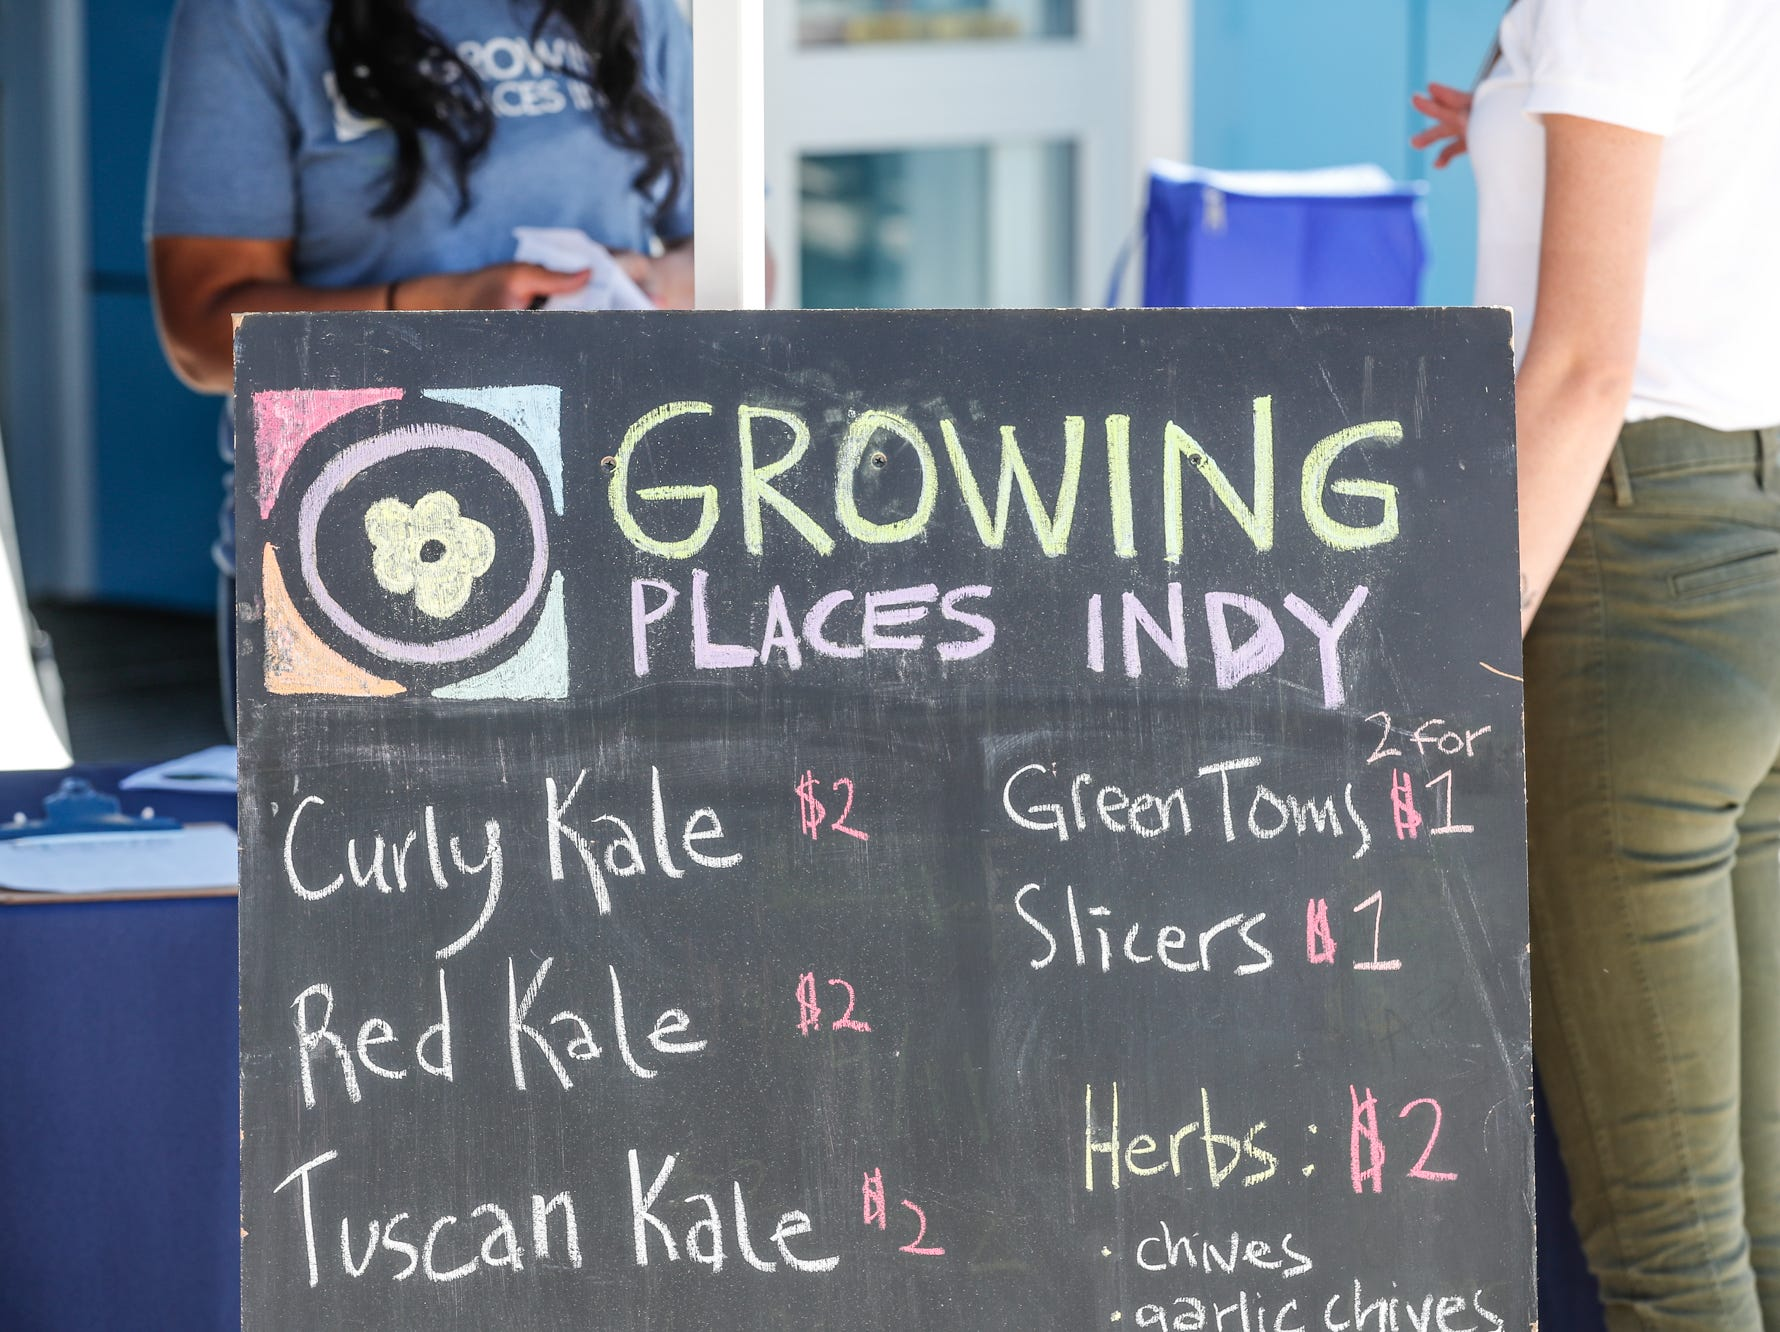 Fresh produce is listed with prices at the Julia M. Carson Transit Center through the ÒFood in TransitÓ program on Friday, Sept. 14, 2018. Indianapolis Mayor Joe Hogsett, in partnership with IndyGo and Growing Places Indy, launched the ÒFood in TransitÓ program. Visitors to the Transit Center can purchase produce every Friday from 3 p.m. to 6 p.m. through October 26.